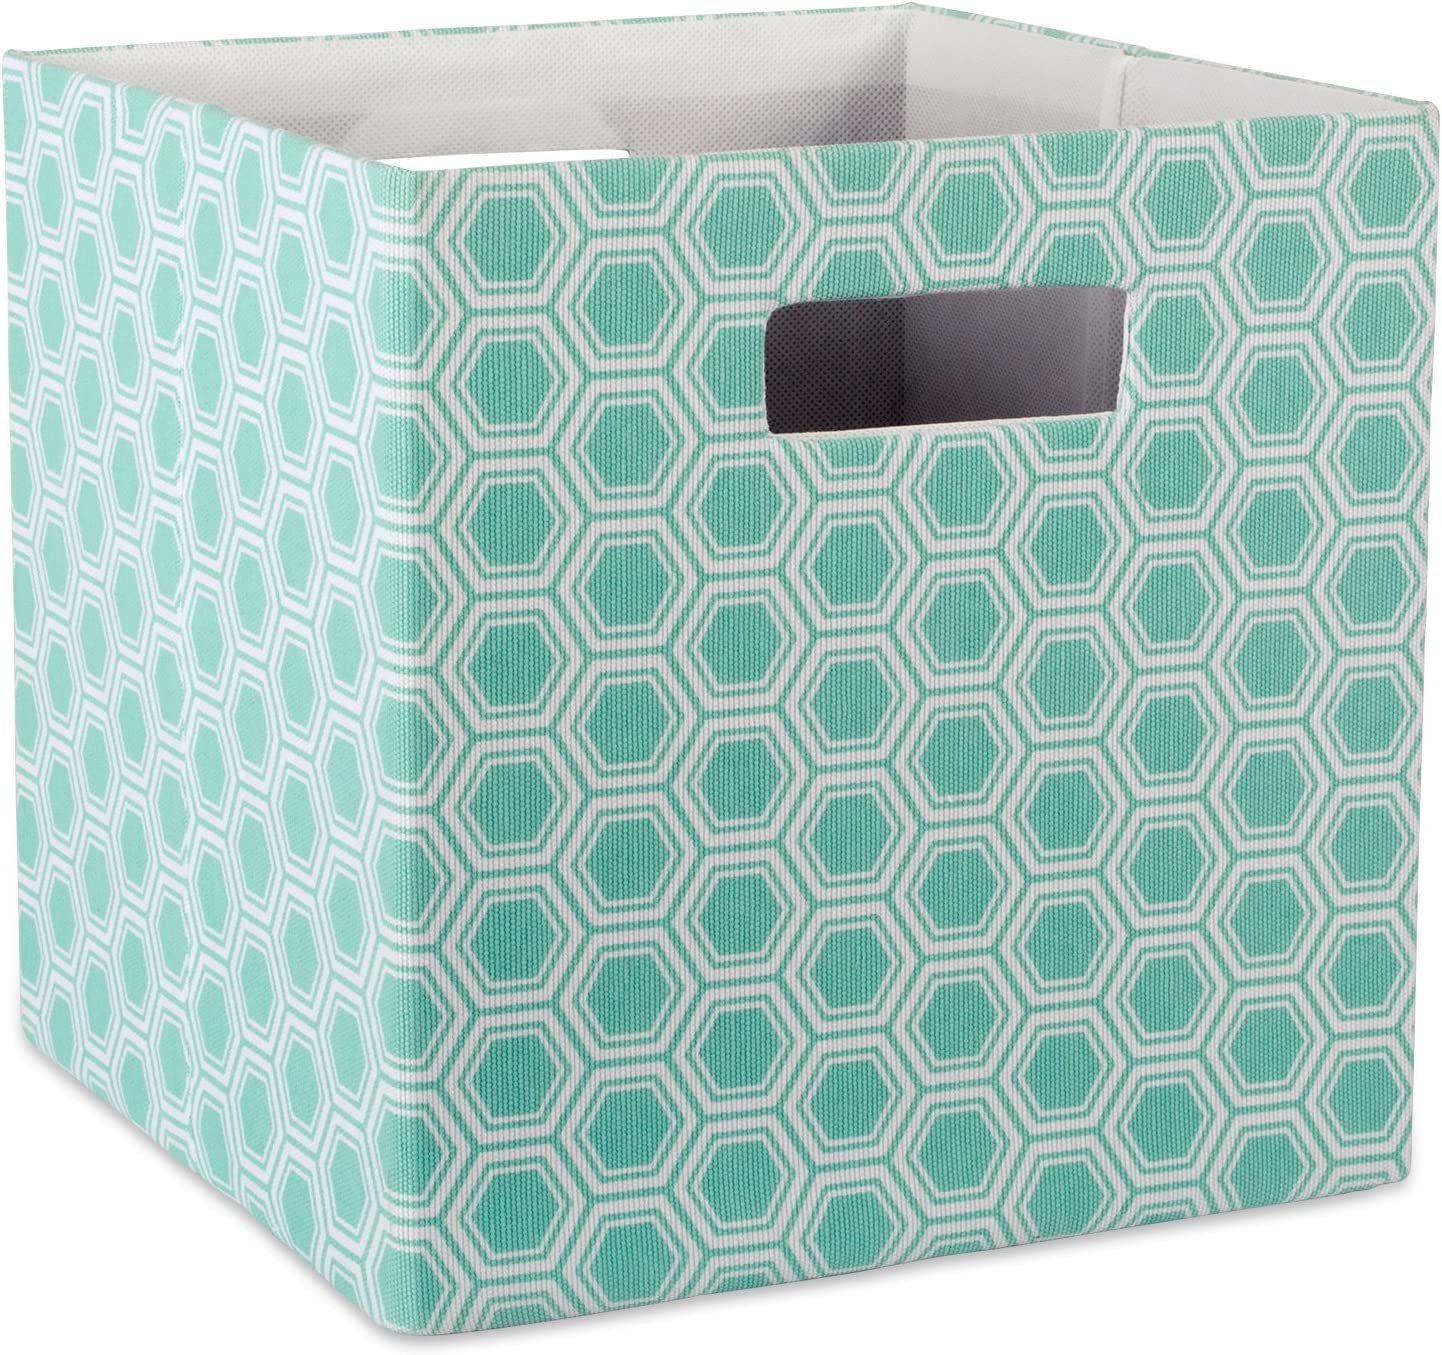 """DII Hard Sided Collapsible Fabric Storage Container for Nursery, Offices, & Home Organization, (11x11x11"""") - Honeycomb Aqua"""